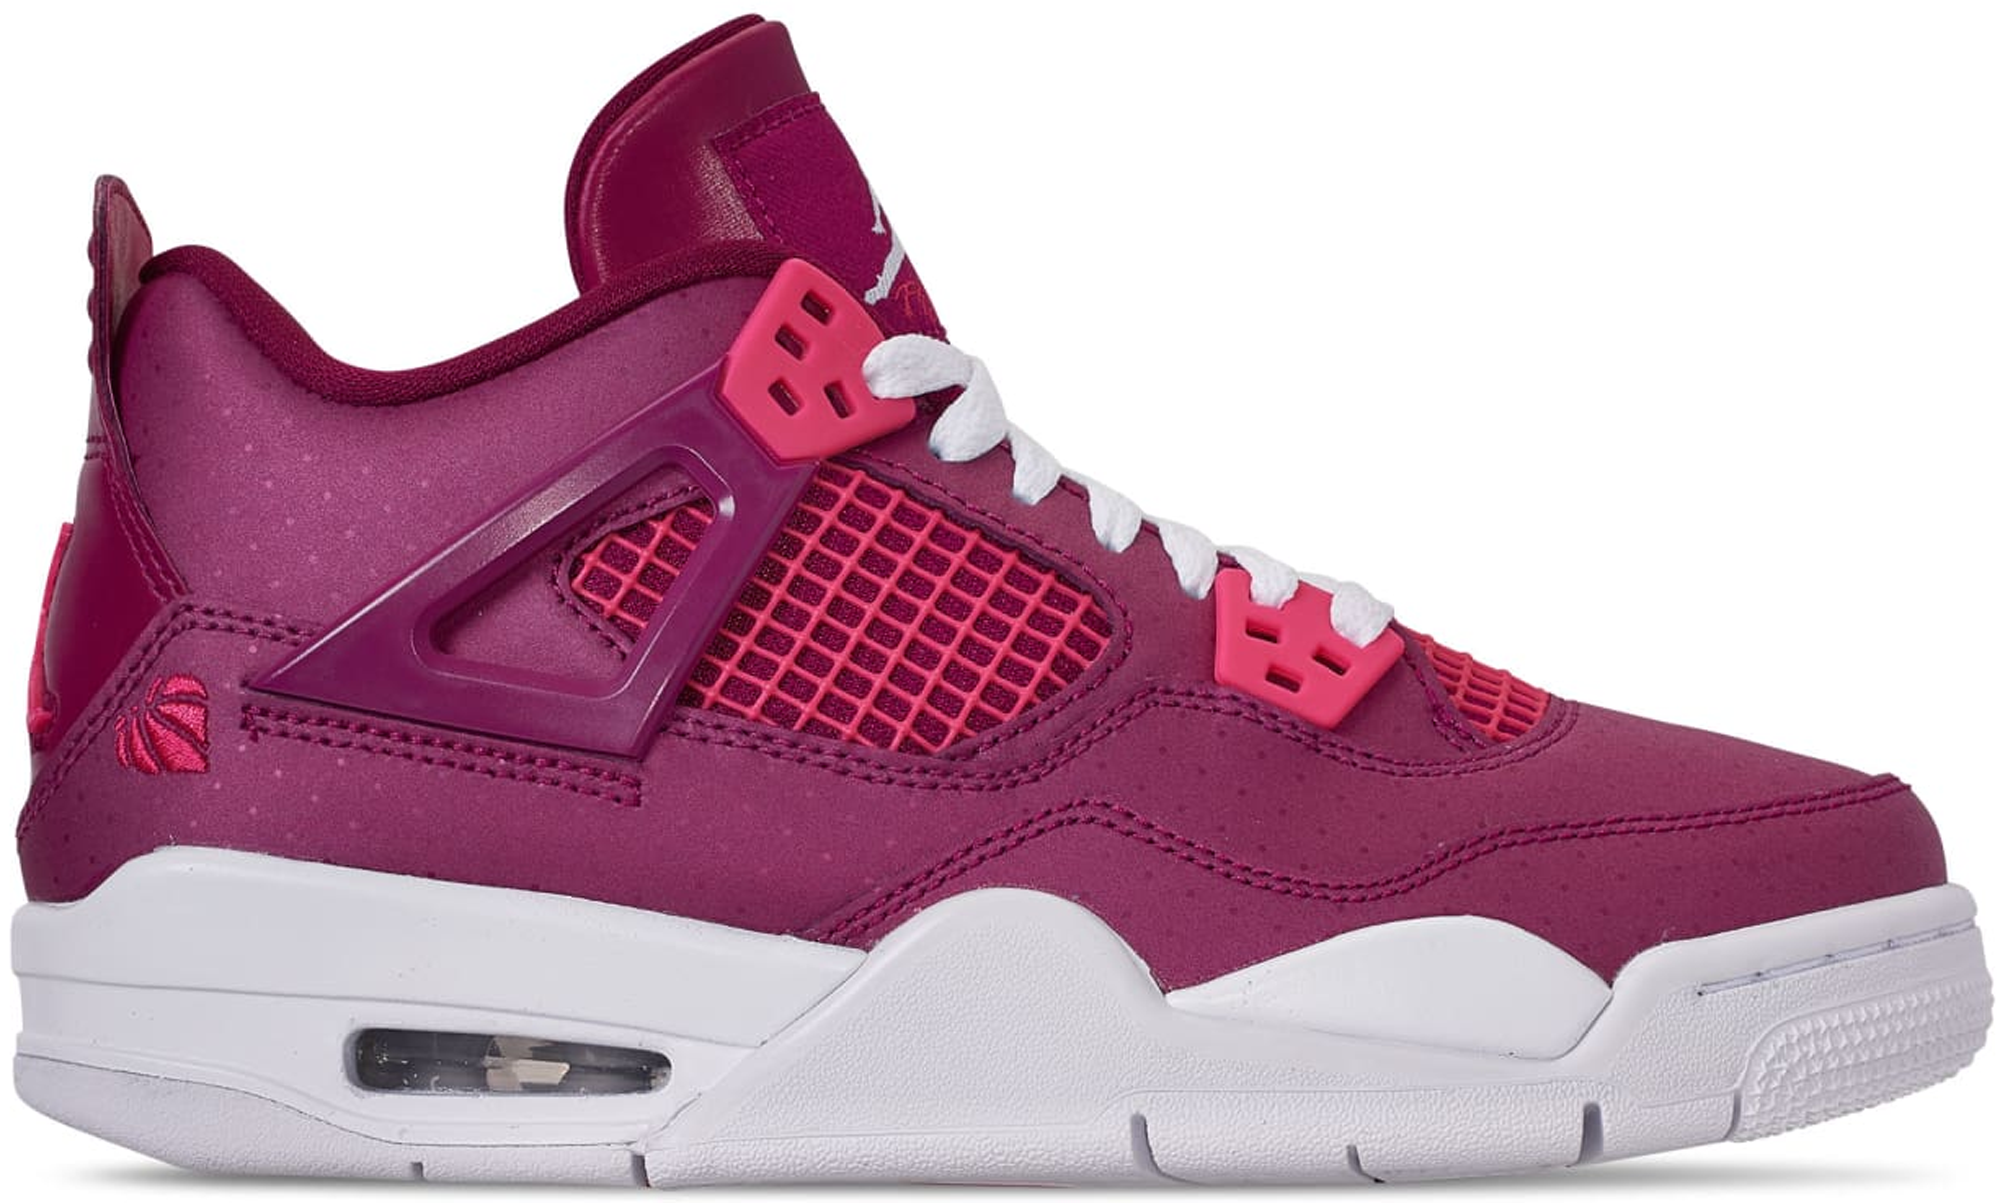 Jordan 4 Retro Valentine's Day 2019 (GS)